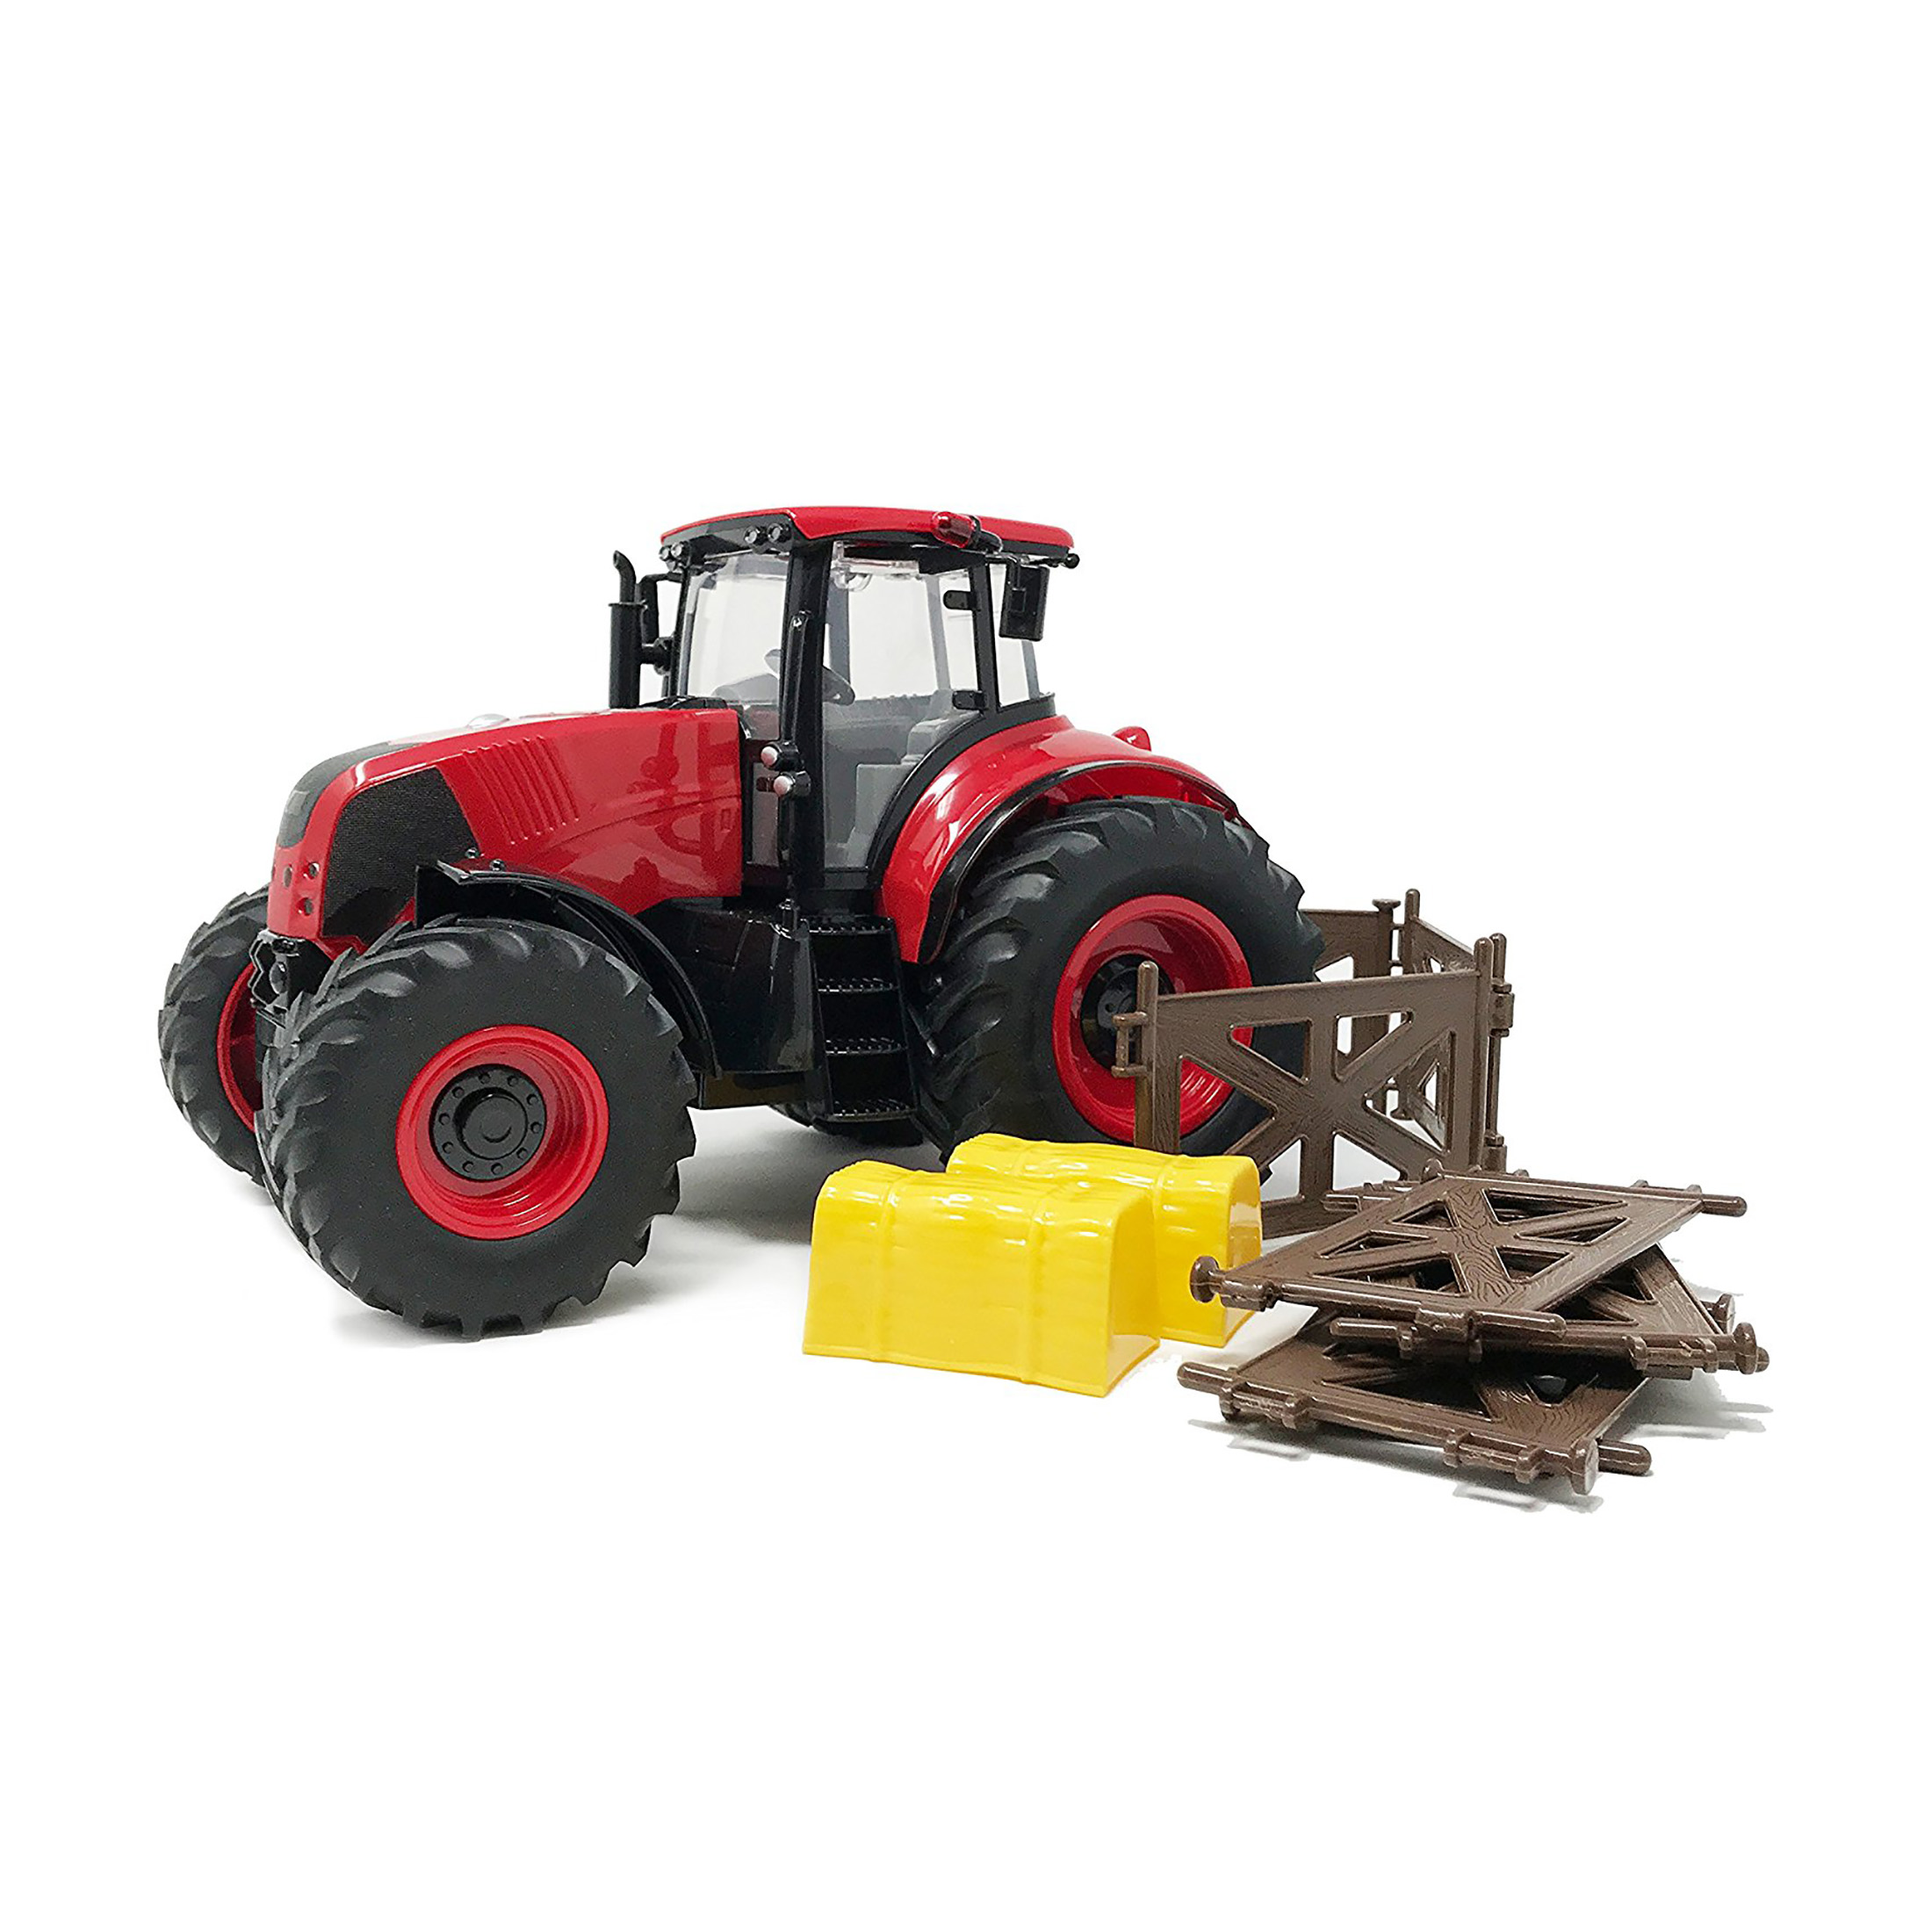 BOLEY Red Farm Tractor Toy by Boley